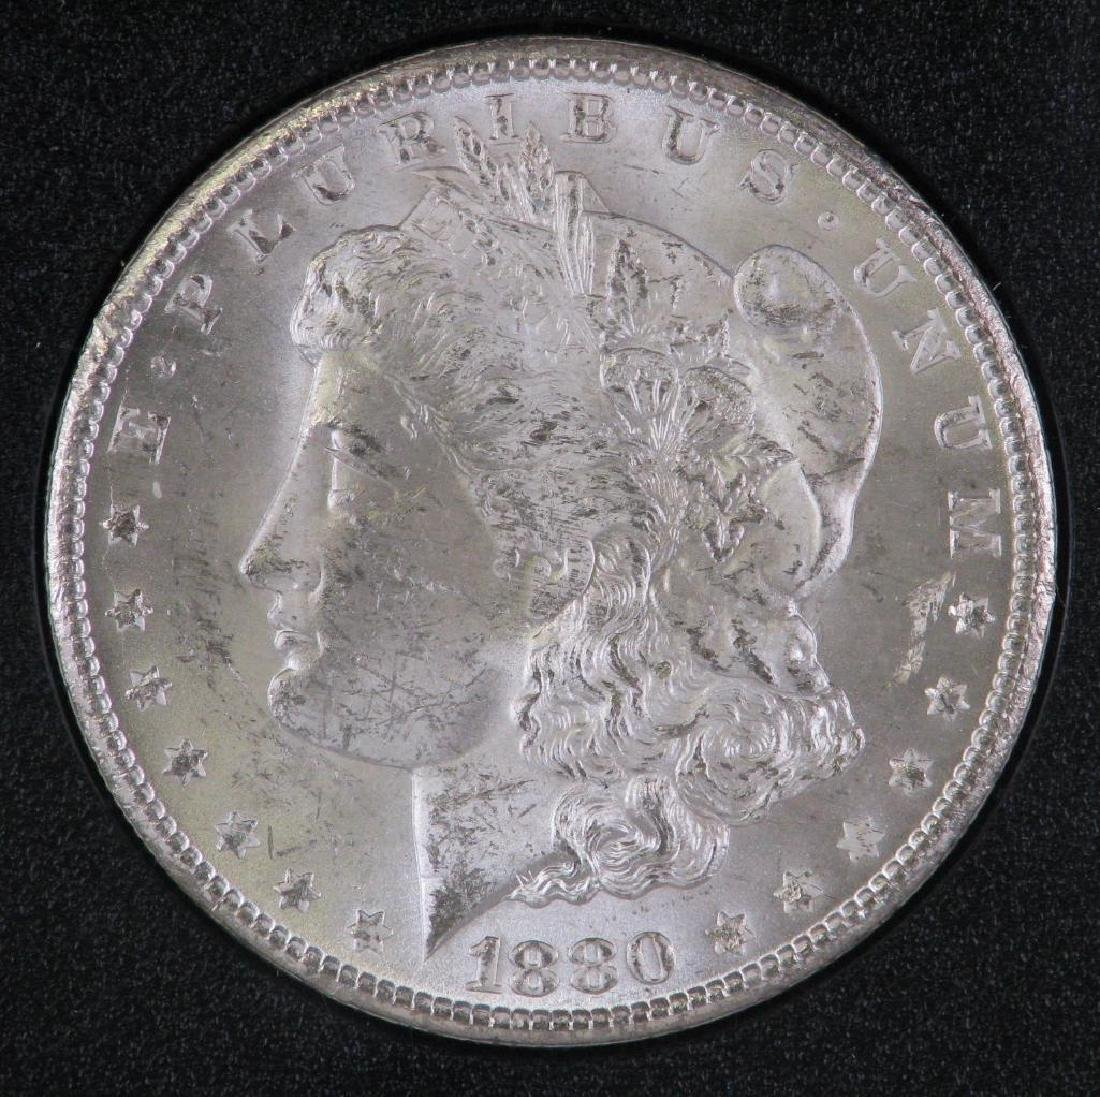 1880-CC Morgan Dollar: GSAÊHoard